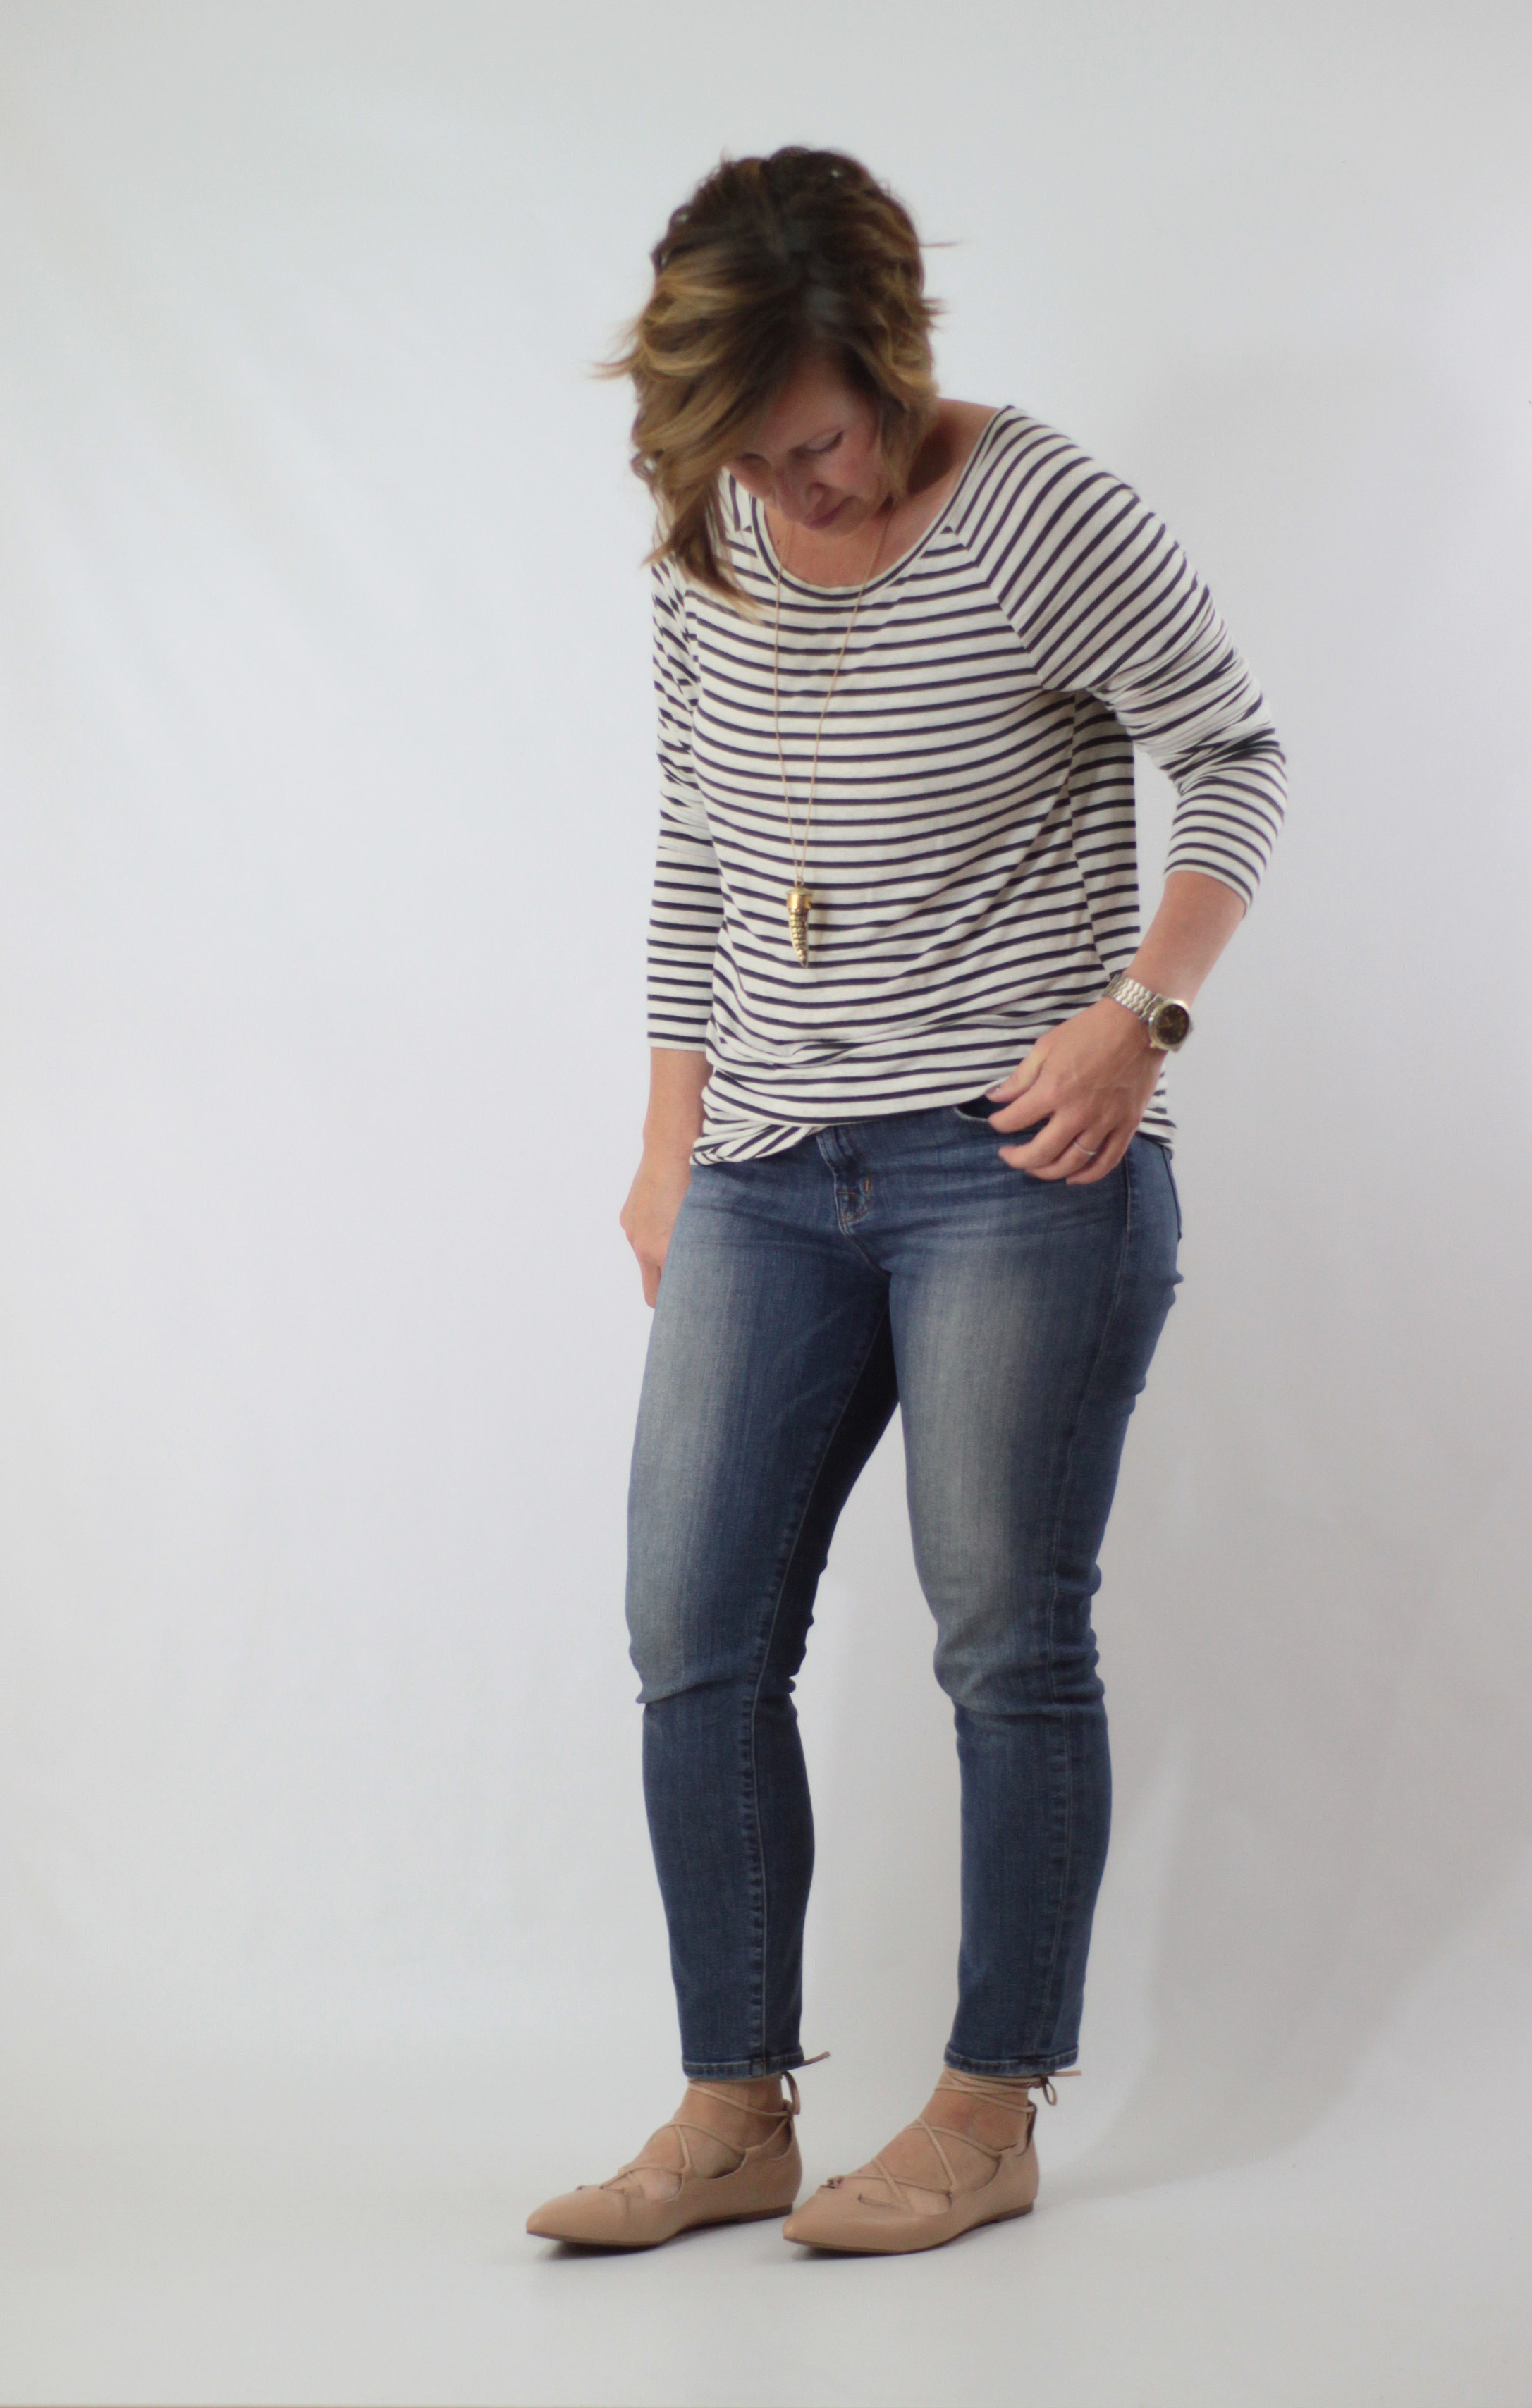 lace up flats and stripes 2